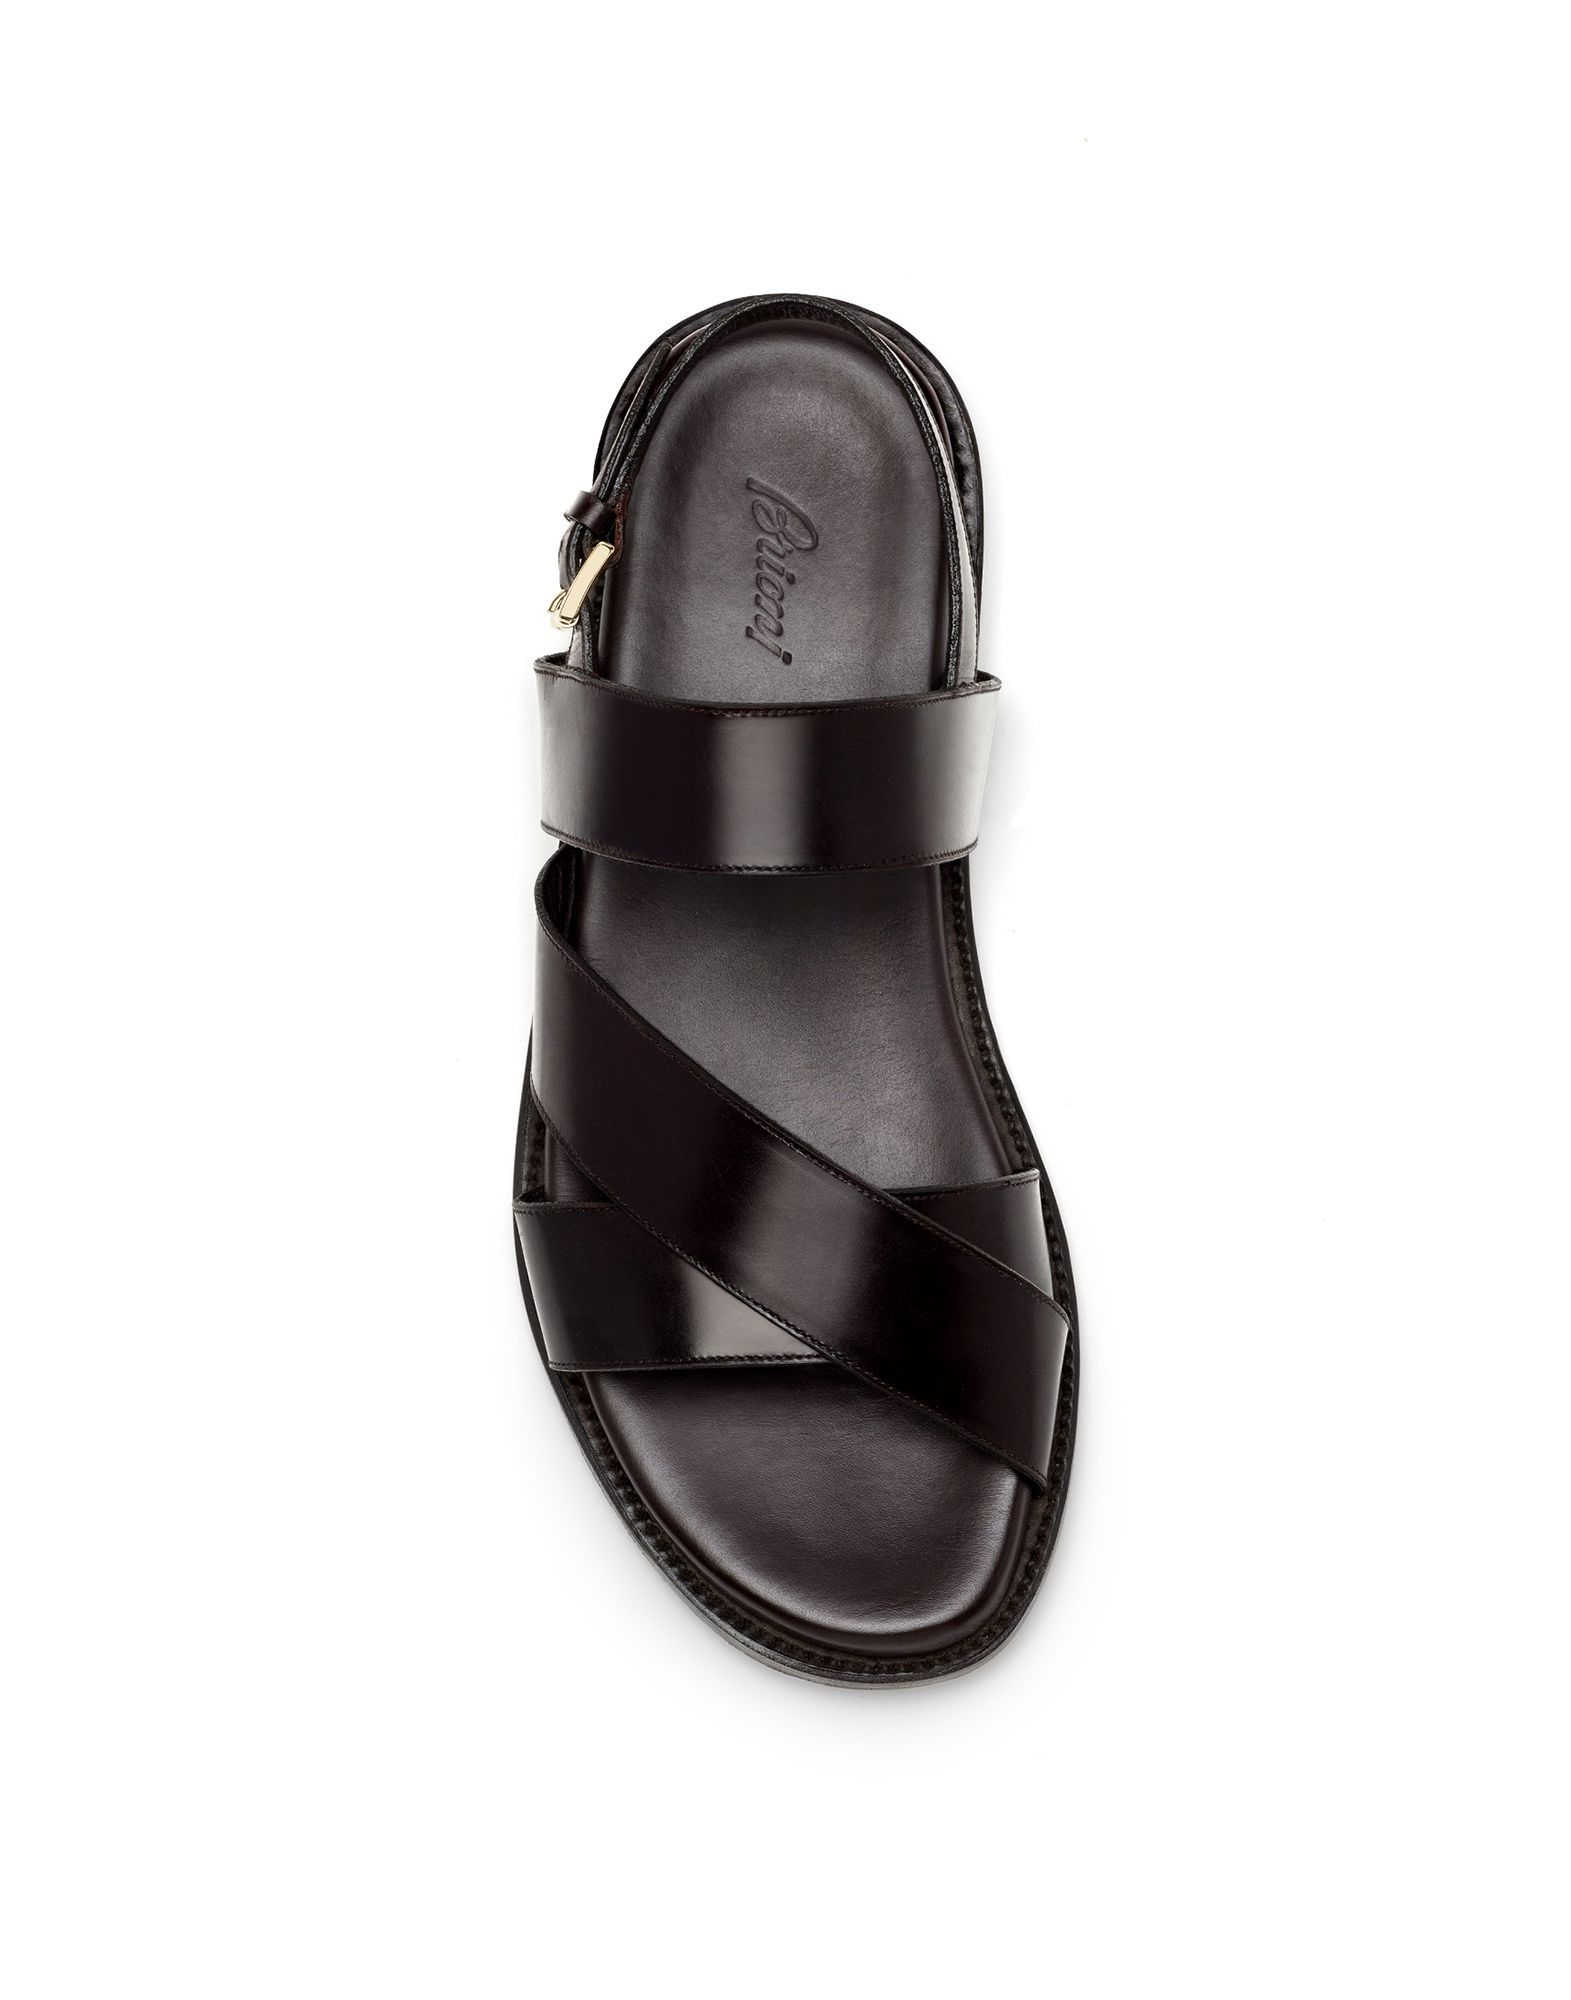 531919344e0b Brioni Men s Sandals